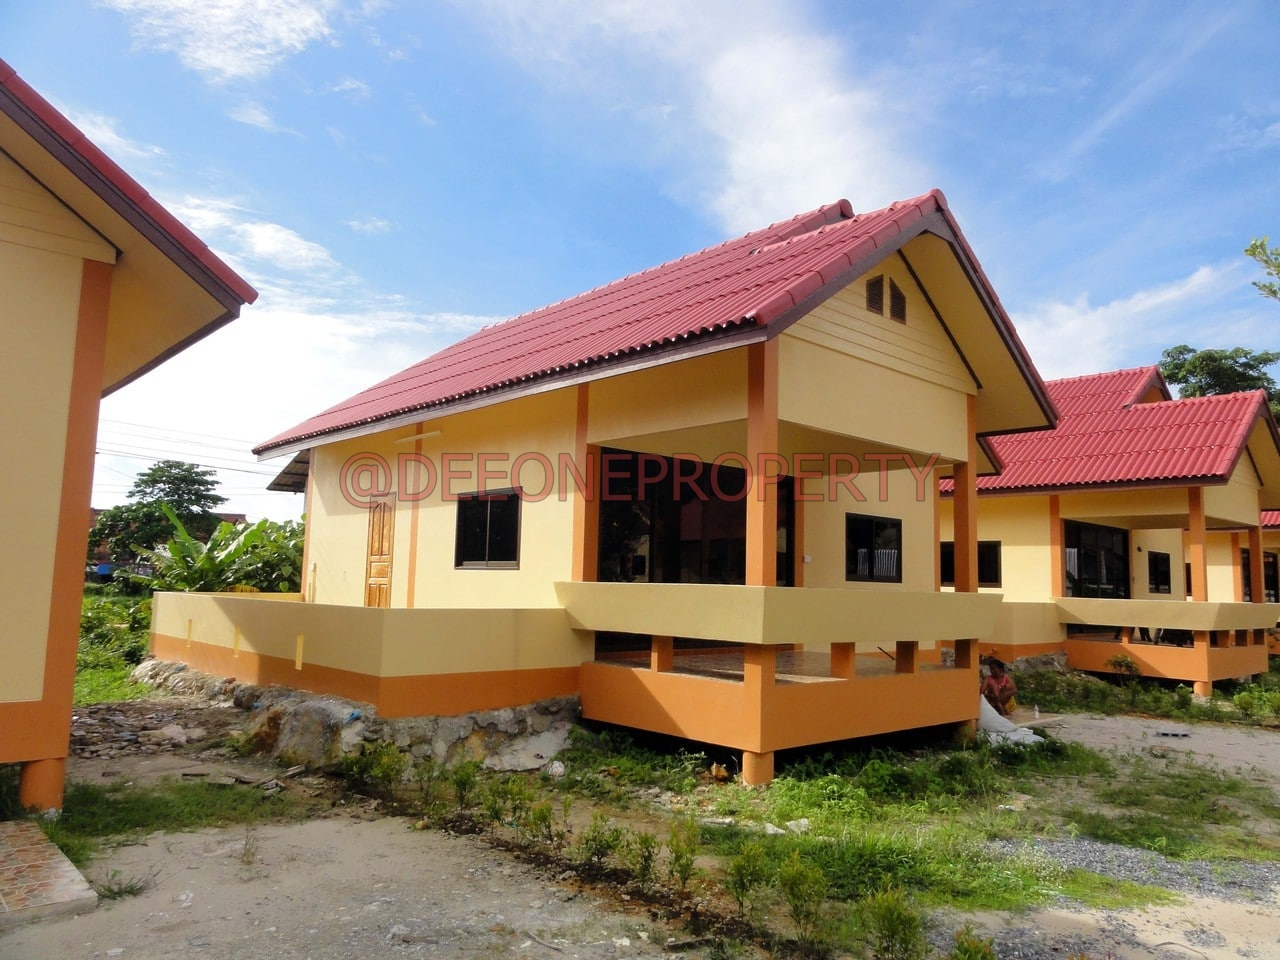 property id kp006 for rent 16500 month accommodation house bungalows